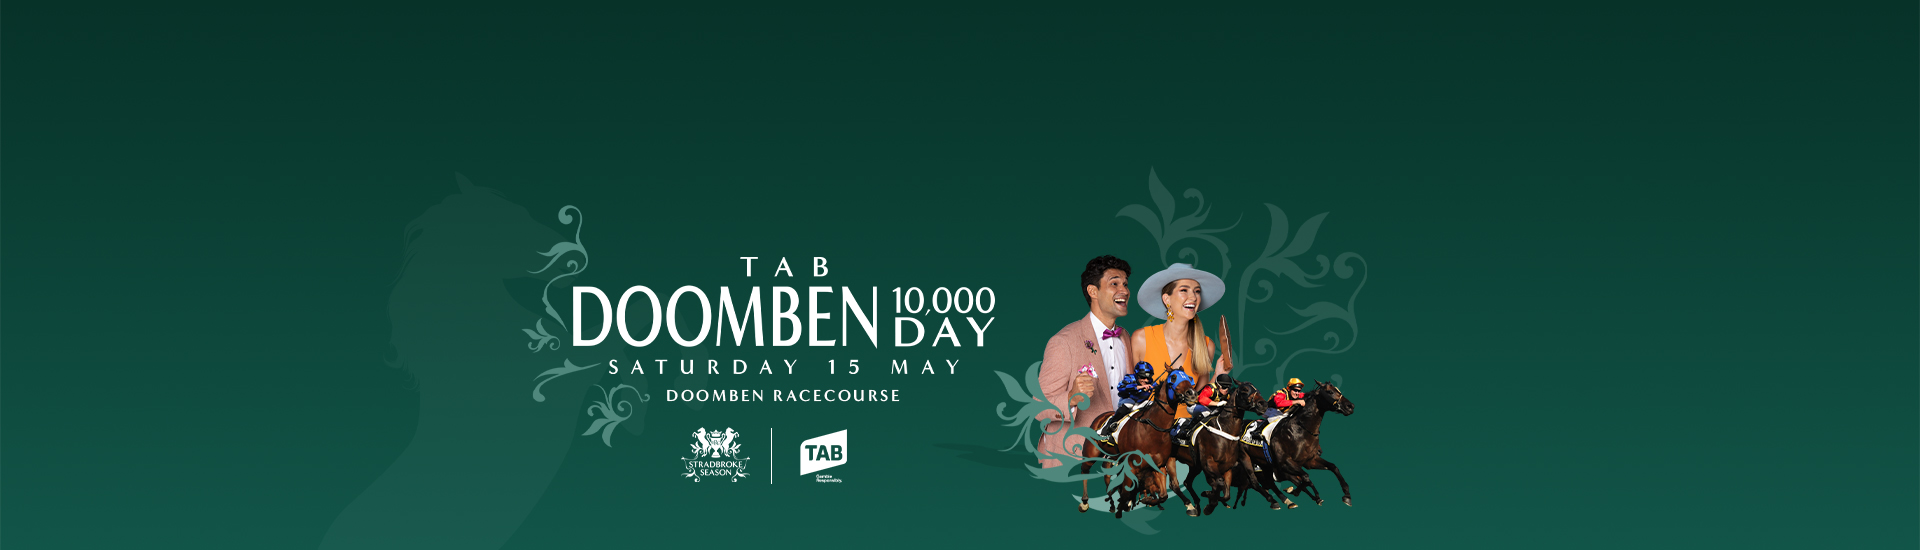 TAB Doomben 10,000 Day | Brisbane Racing Club